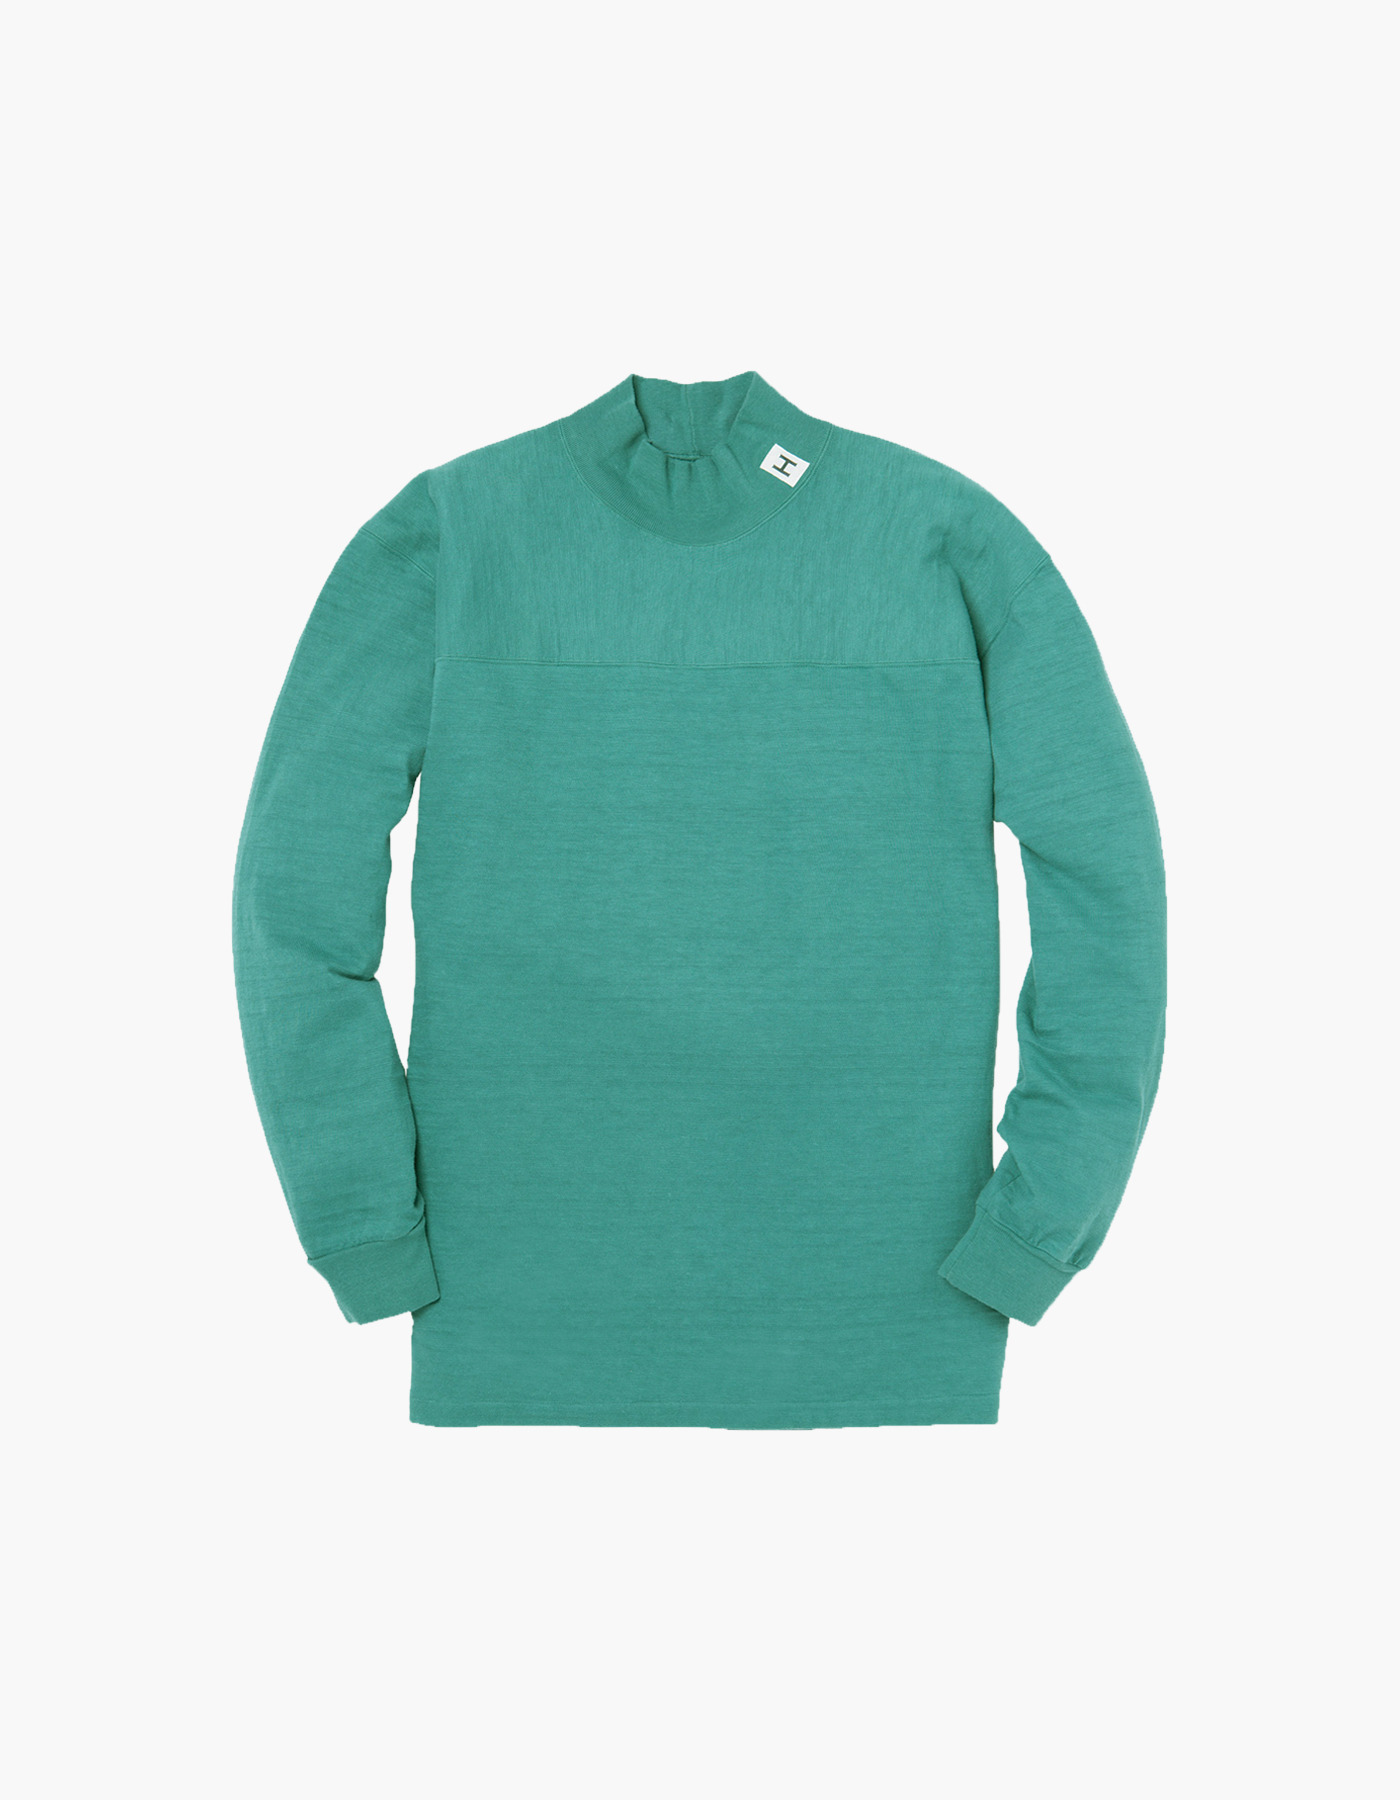 H FOOTBALL SLUB MOC-NECK BY DUBBLE WORKS / GREEN